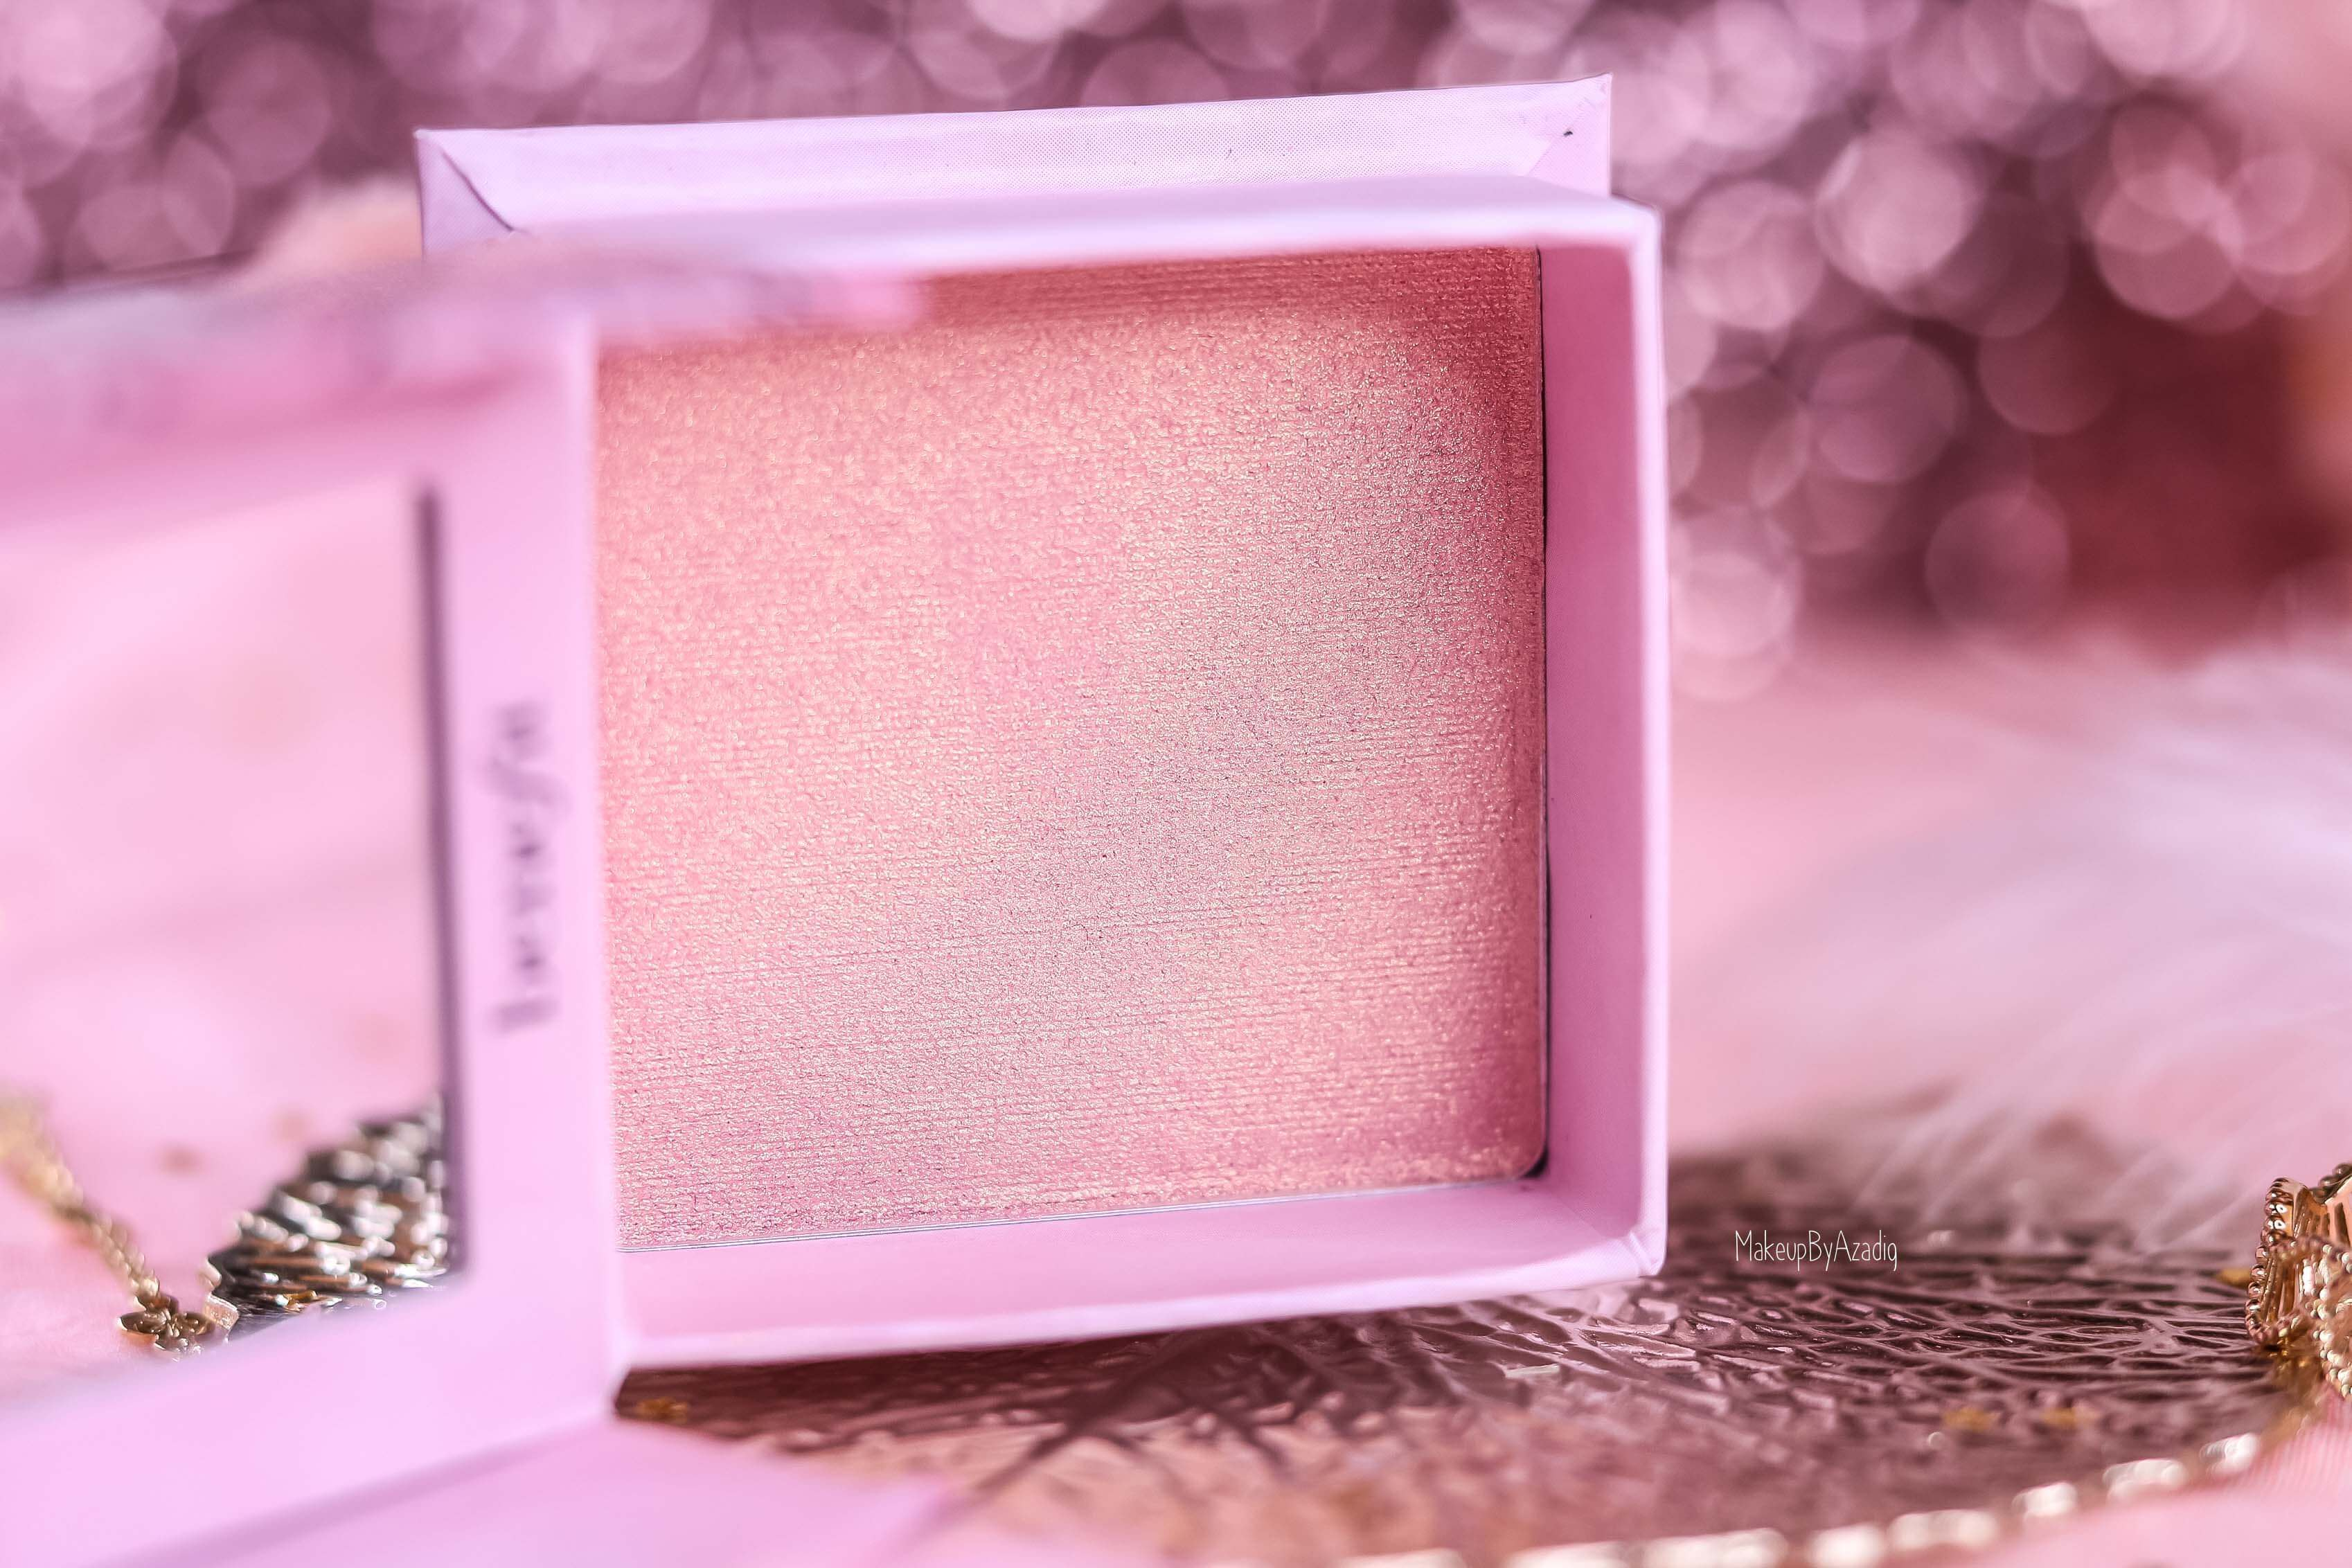 revue-highlighter-benefit-tickle-cookie-france-sephora-rose-gold-makeupbyazadig-avis-swatch-prix-couleur